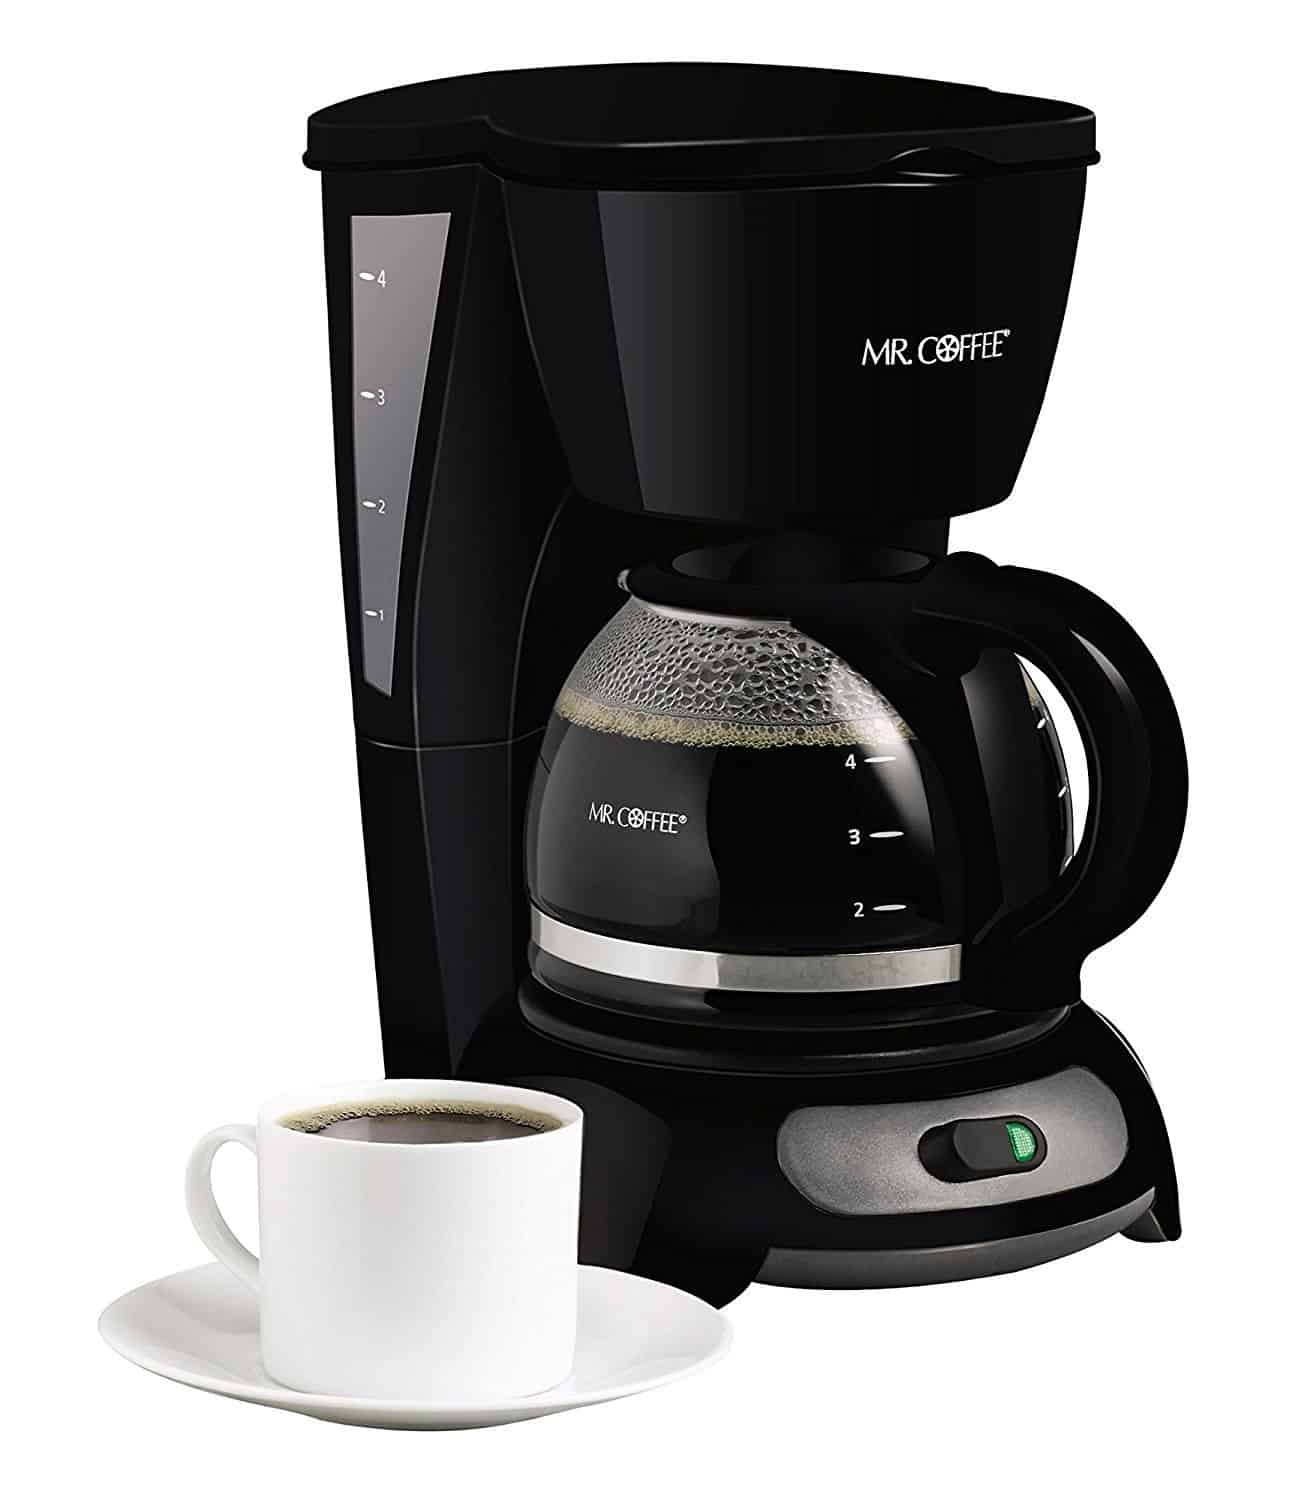 Mr Coffee Latte Maker Leaking : Top 15 Best Small Espresso Machine Options for 2018